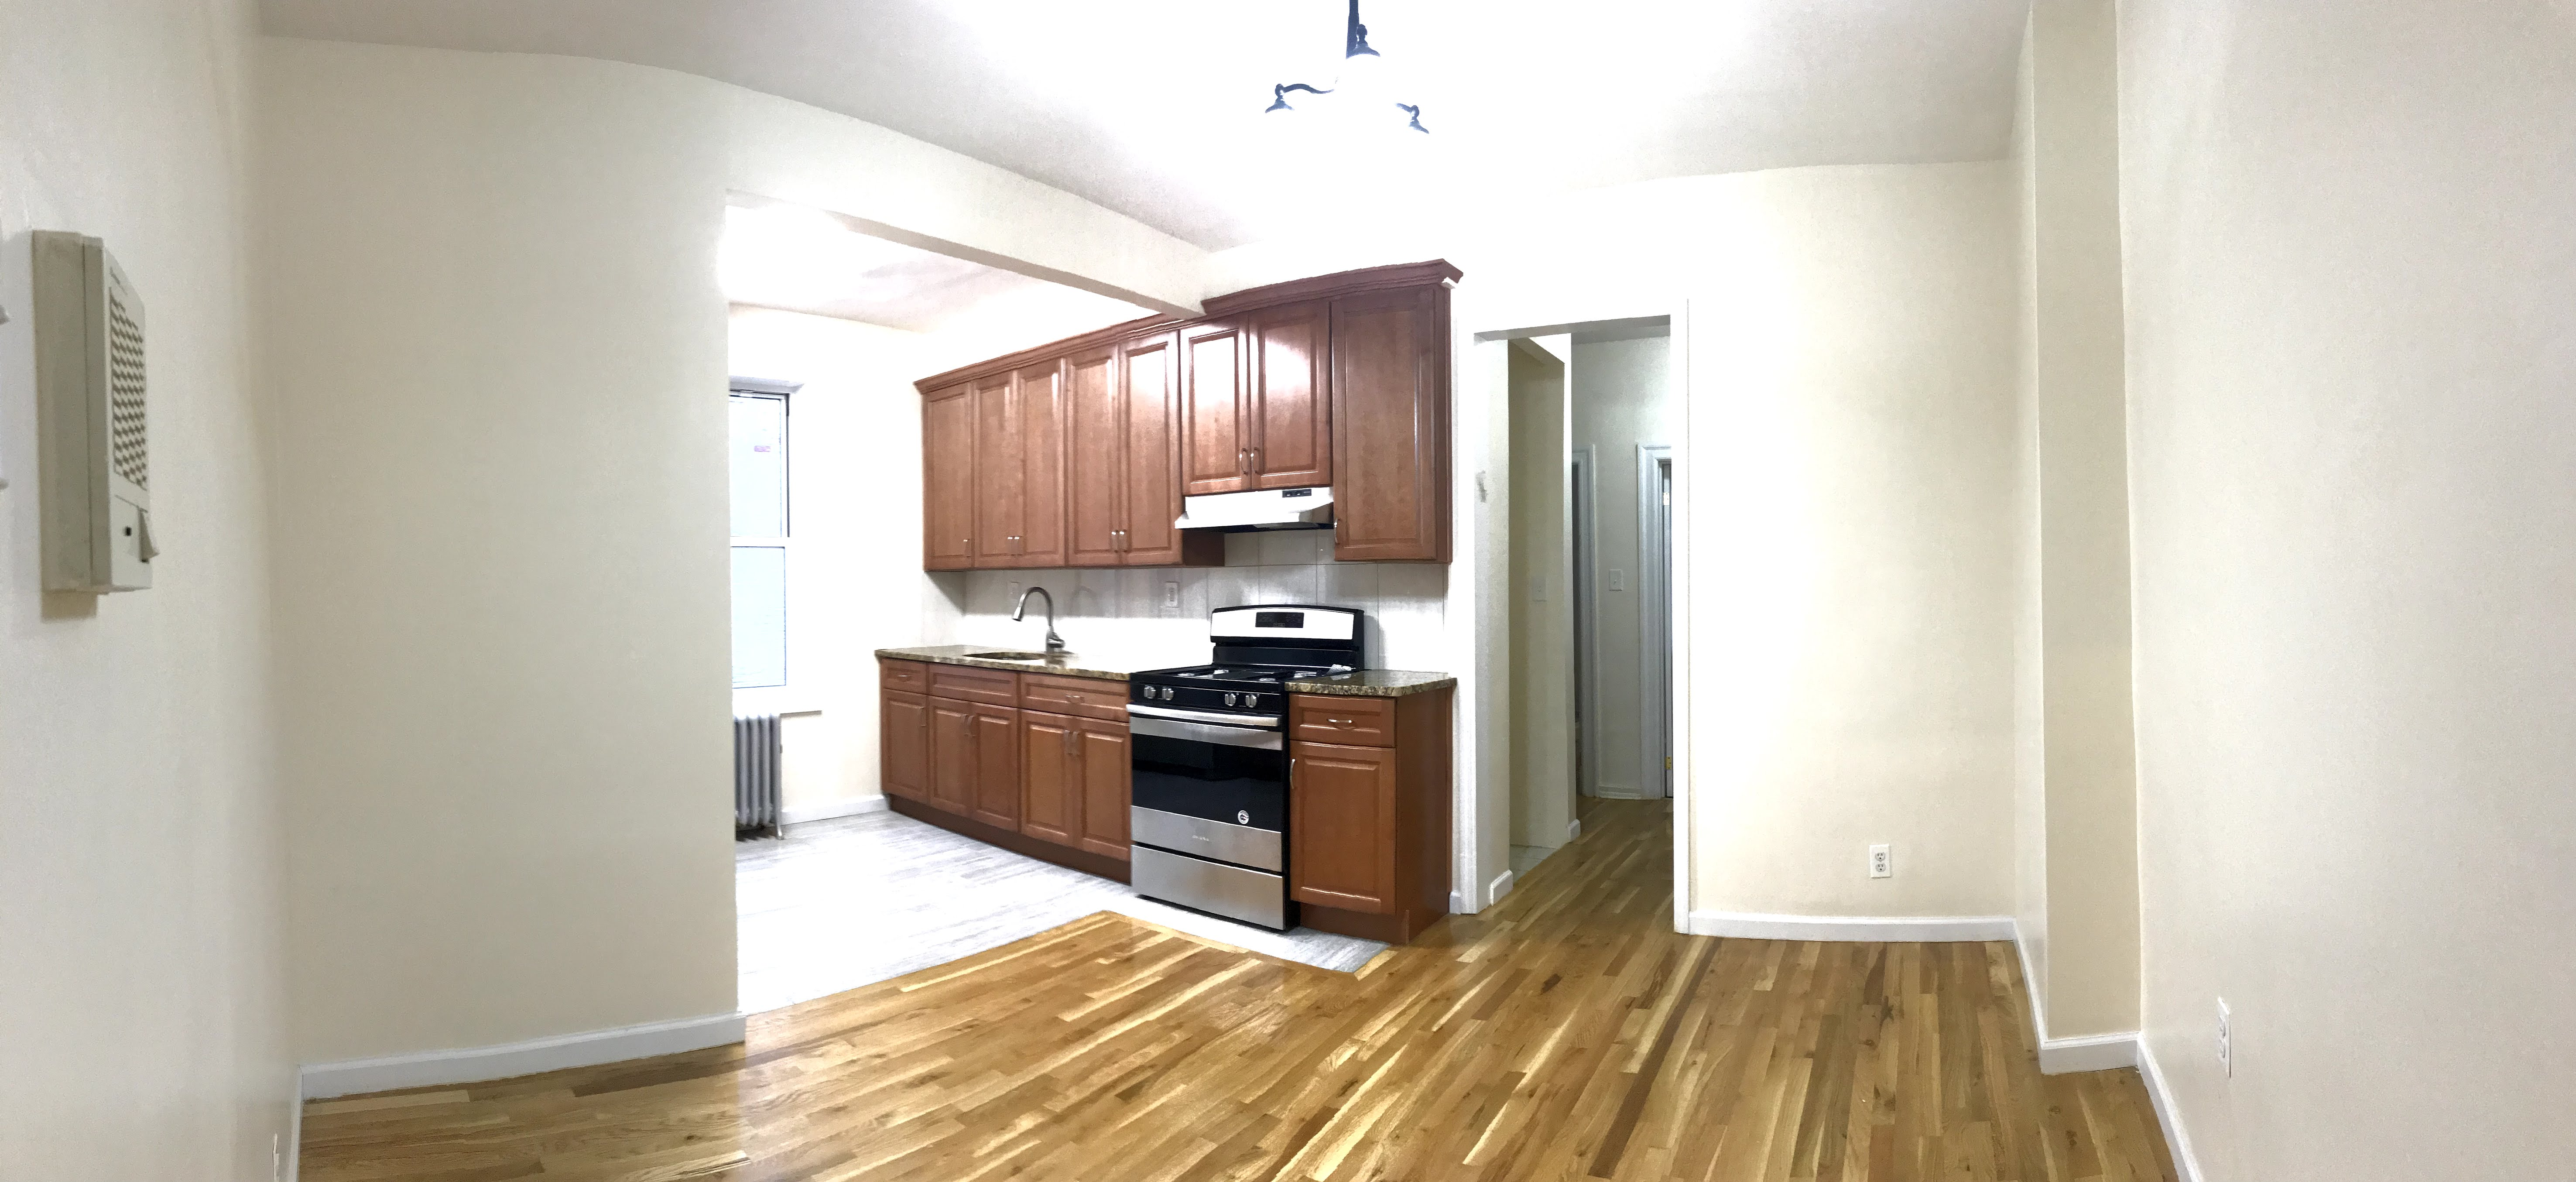 Renovated 700 sf 2 bedroom apartment in crown heights washer dryer hookup for 2 bedroom apartments with washer and dryer hookup